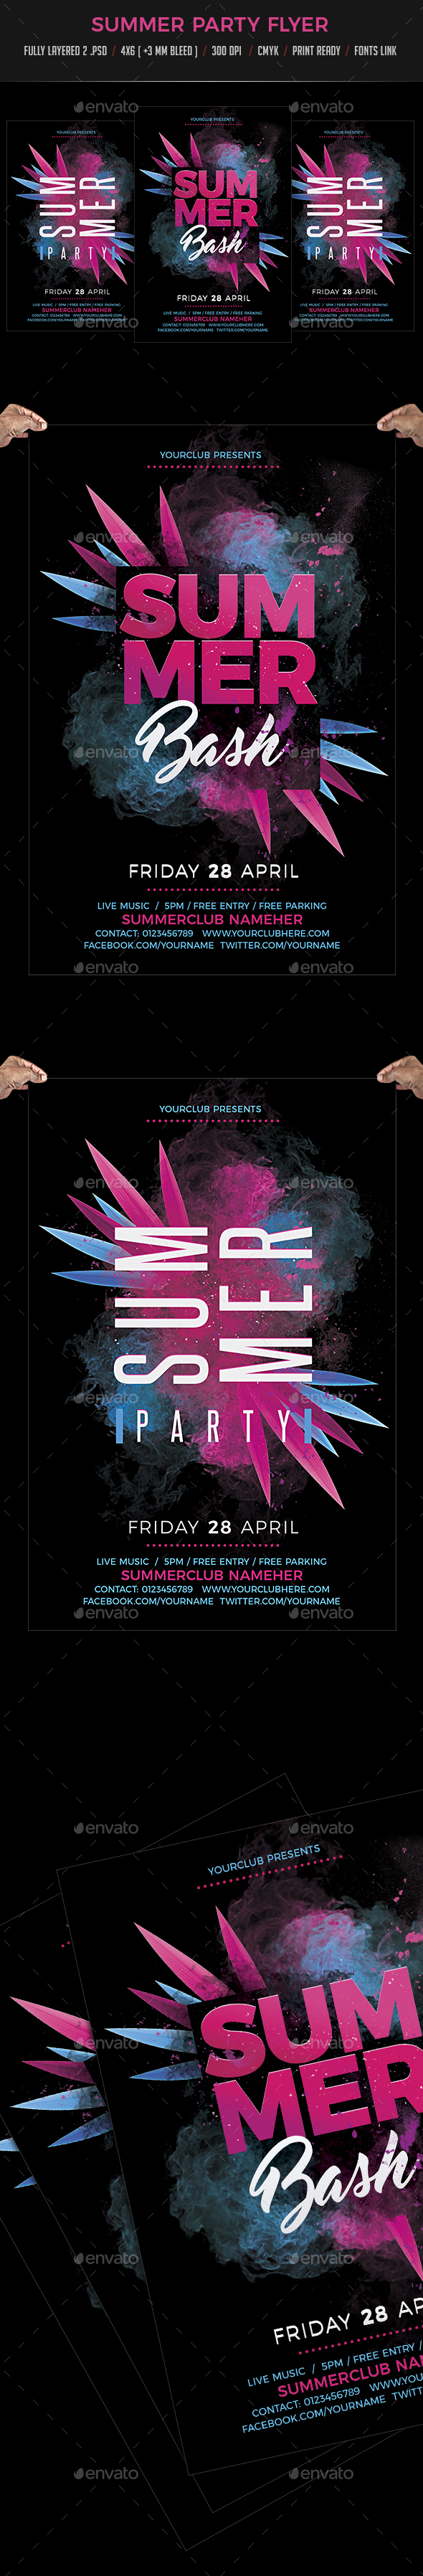 Summer Bash Party Flyer Template - Clubs & Parties Events